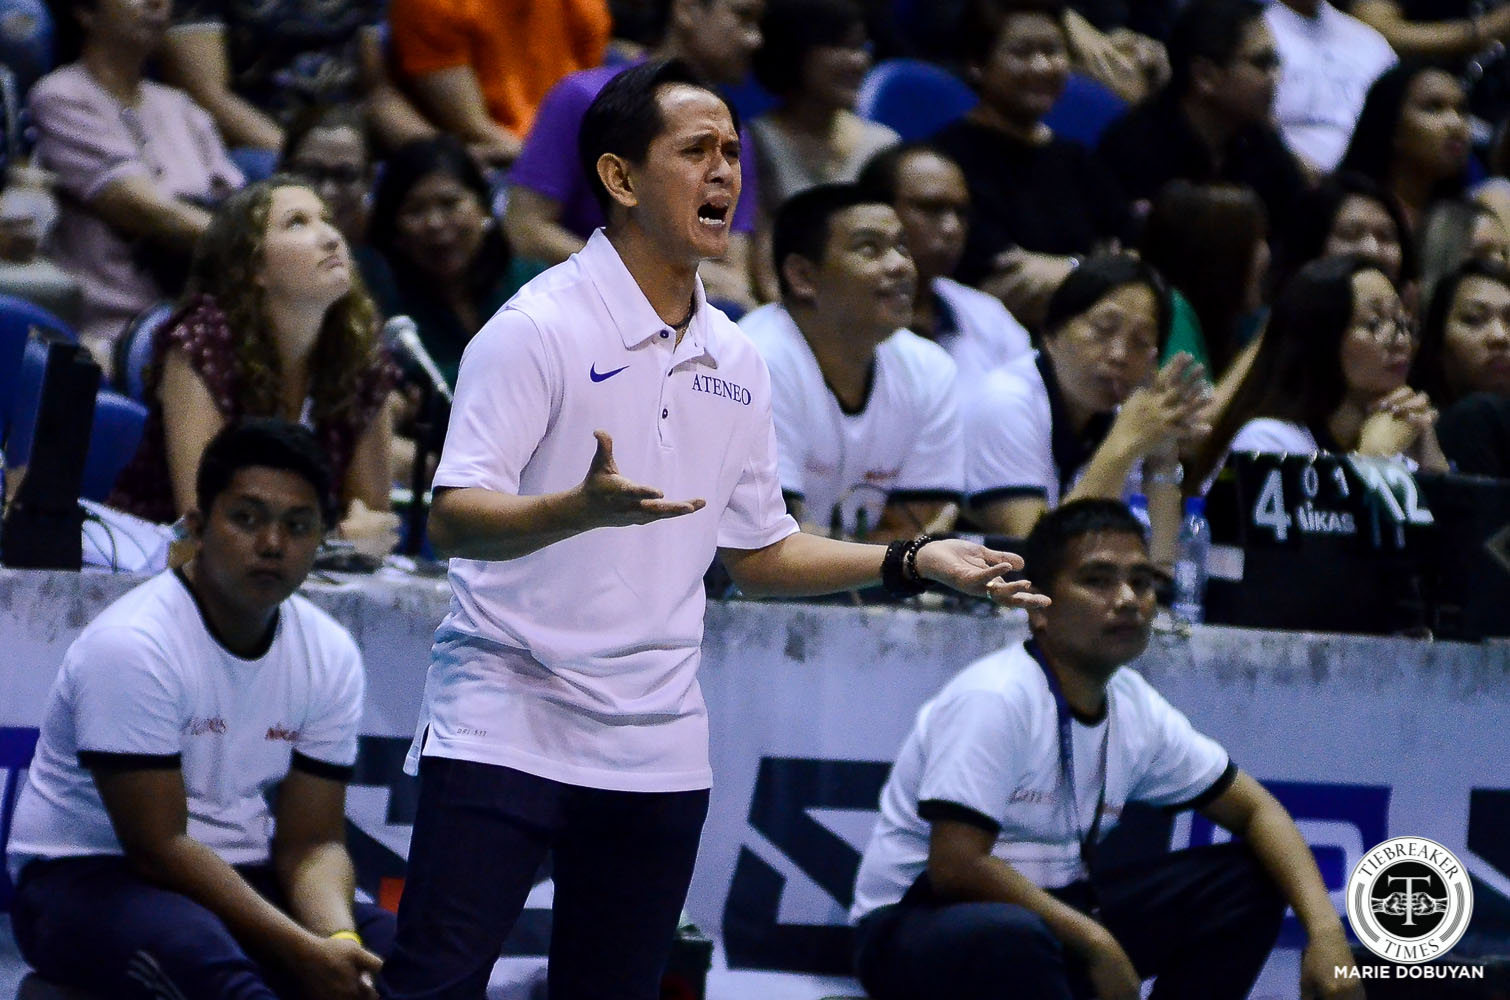 Tiebreaker Times Oliver Almadro does not want Lady Eagles to dwell on 'uncharacteristic' loss ADMU News UAAP Volleyball  UAAP Season 81 Women's Volleyball UAAP Season 81 Oliver Almadro Ateneo Women's Volleyball